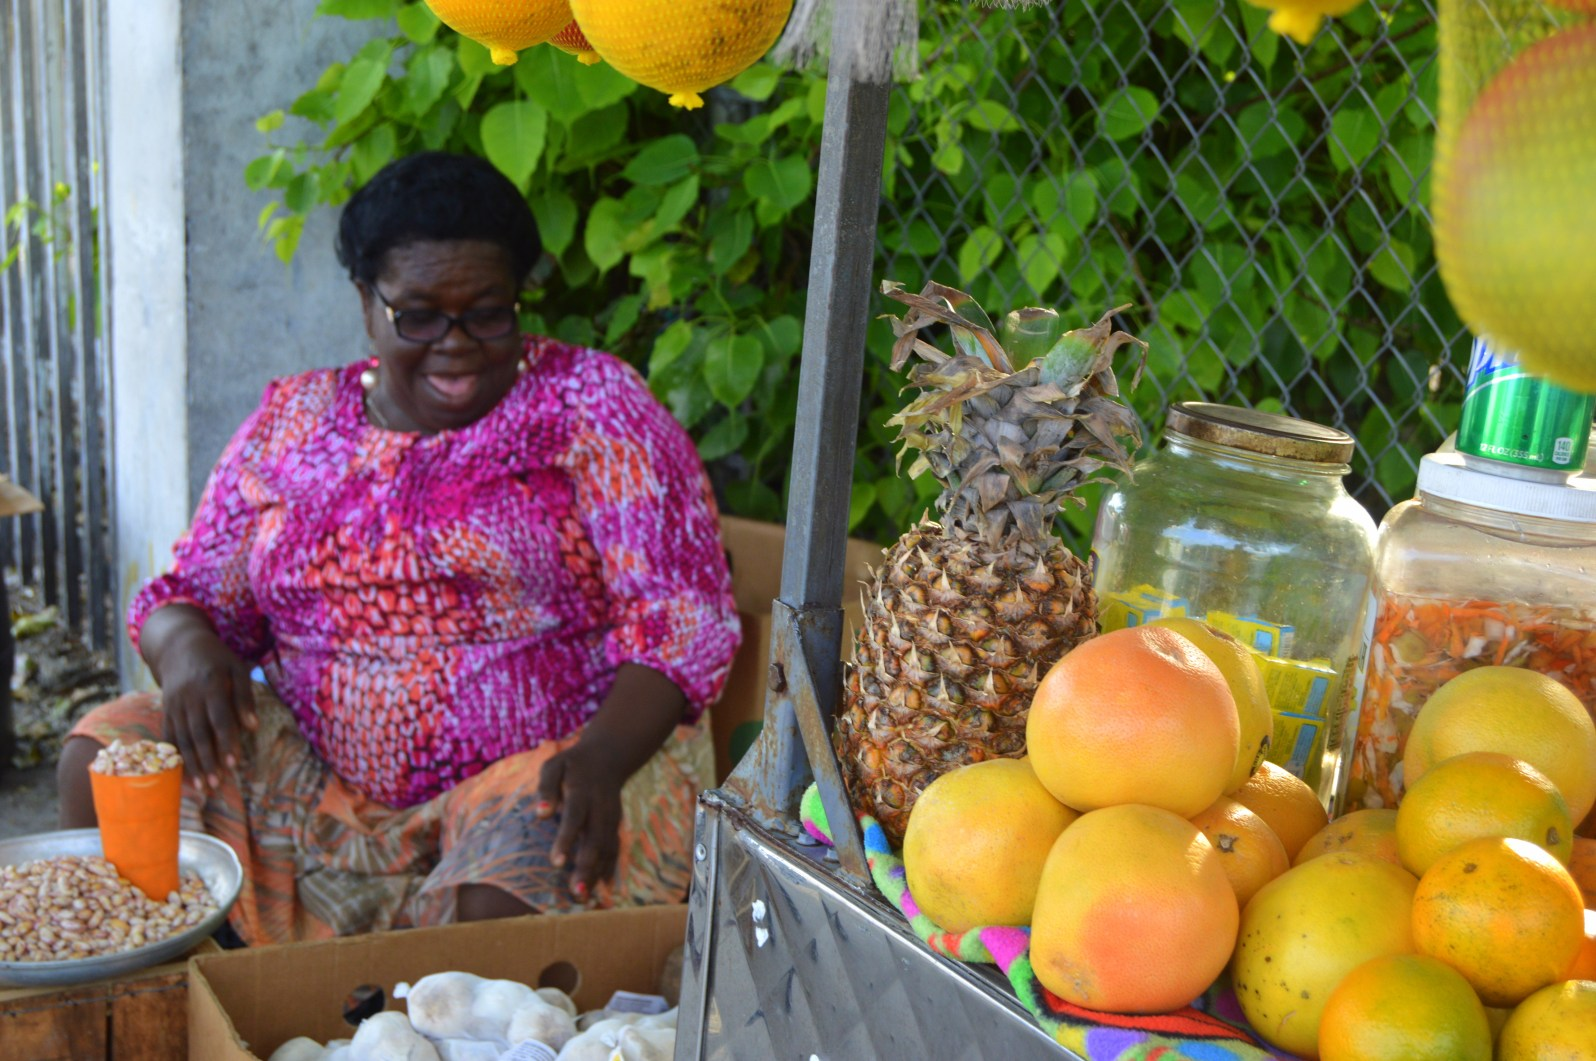 """Machand"" is the creole word for a seller or merchant. This is a fruit and vegetable stand on NE 2nd Ave."